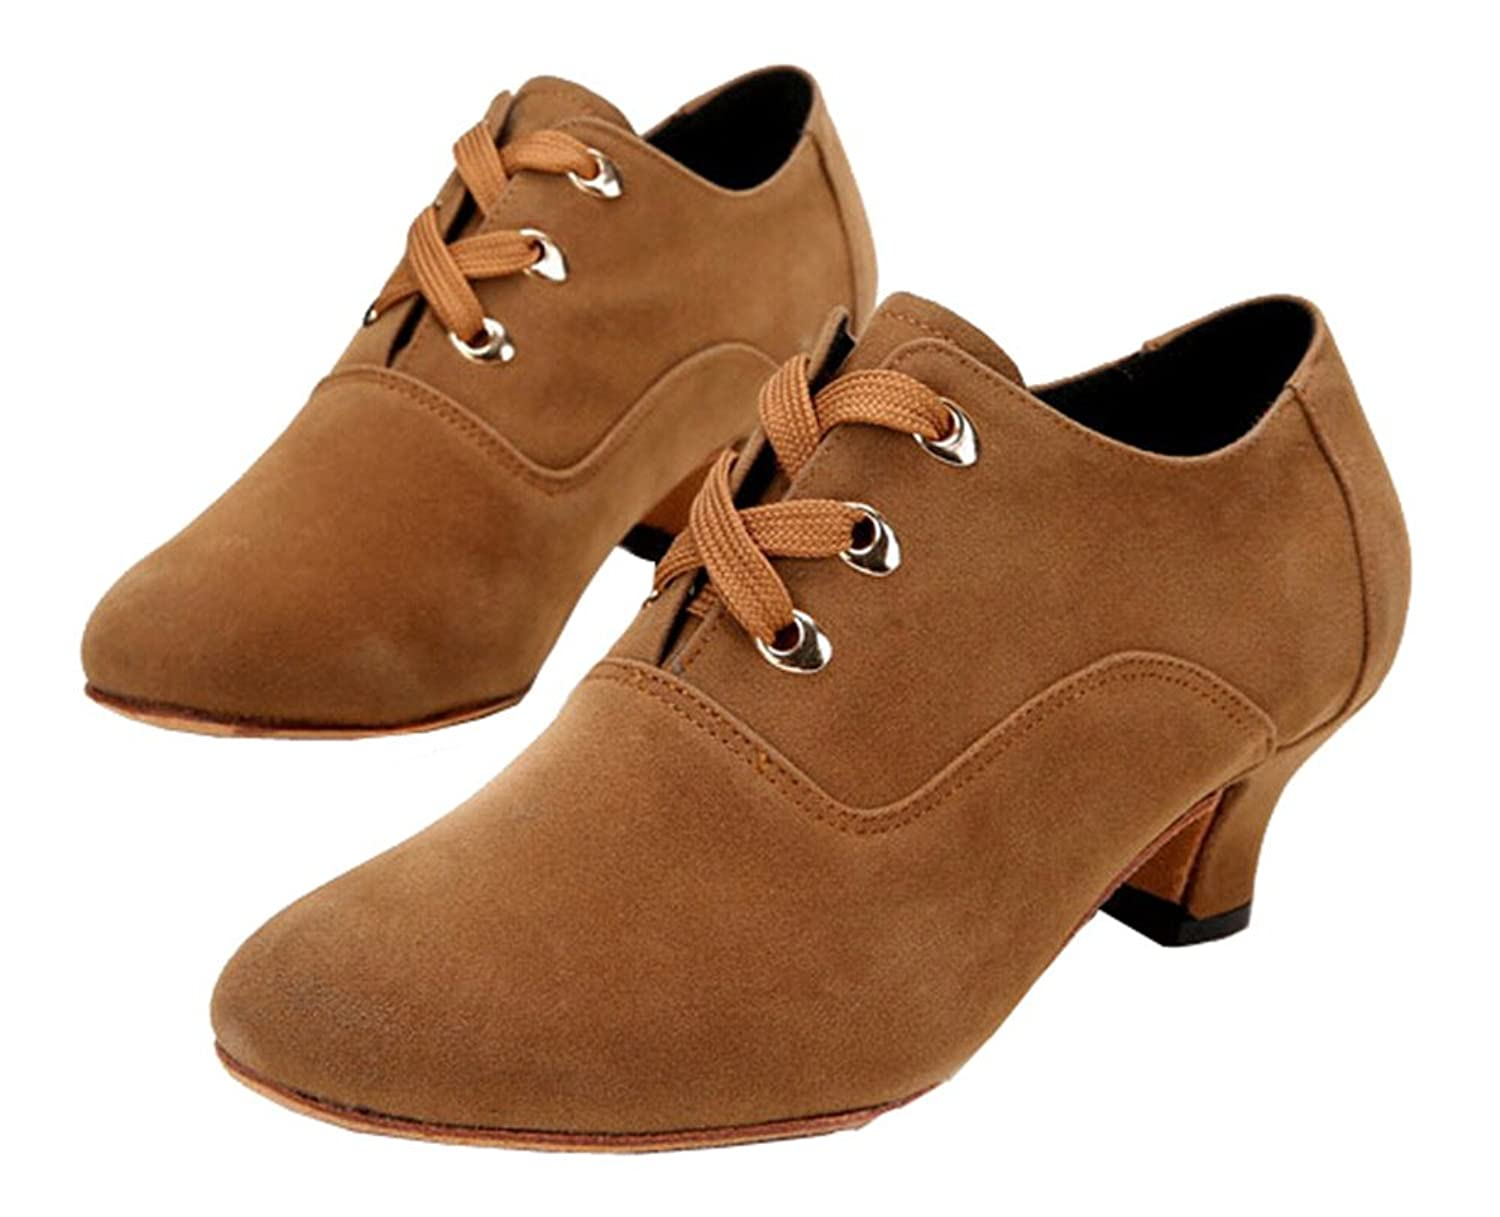 1940s Womens Footwear Womens Modern Practice Social Dance Shoes Ankle Jazz Boots Lace-up $33.50 AT vintagedancer.com